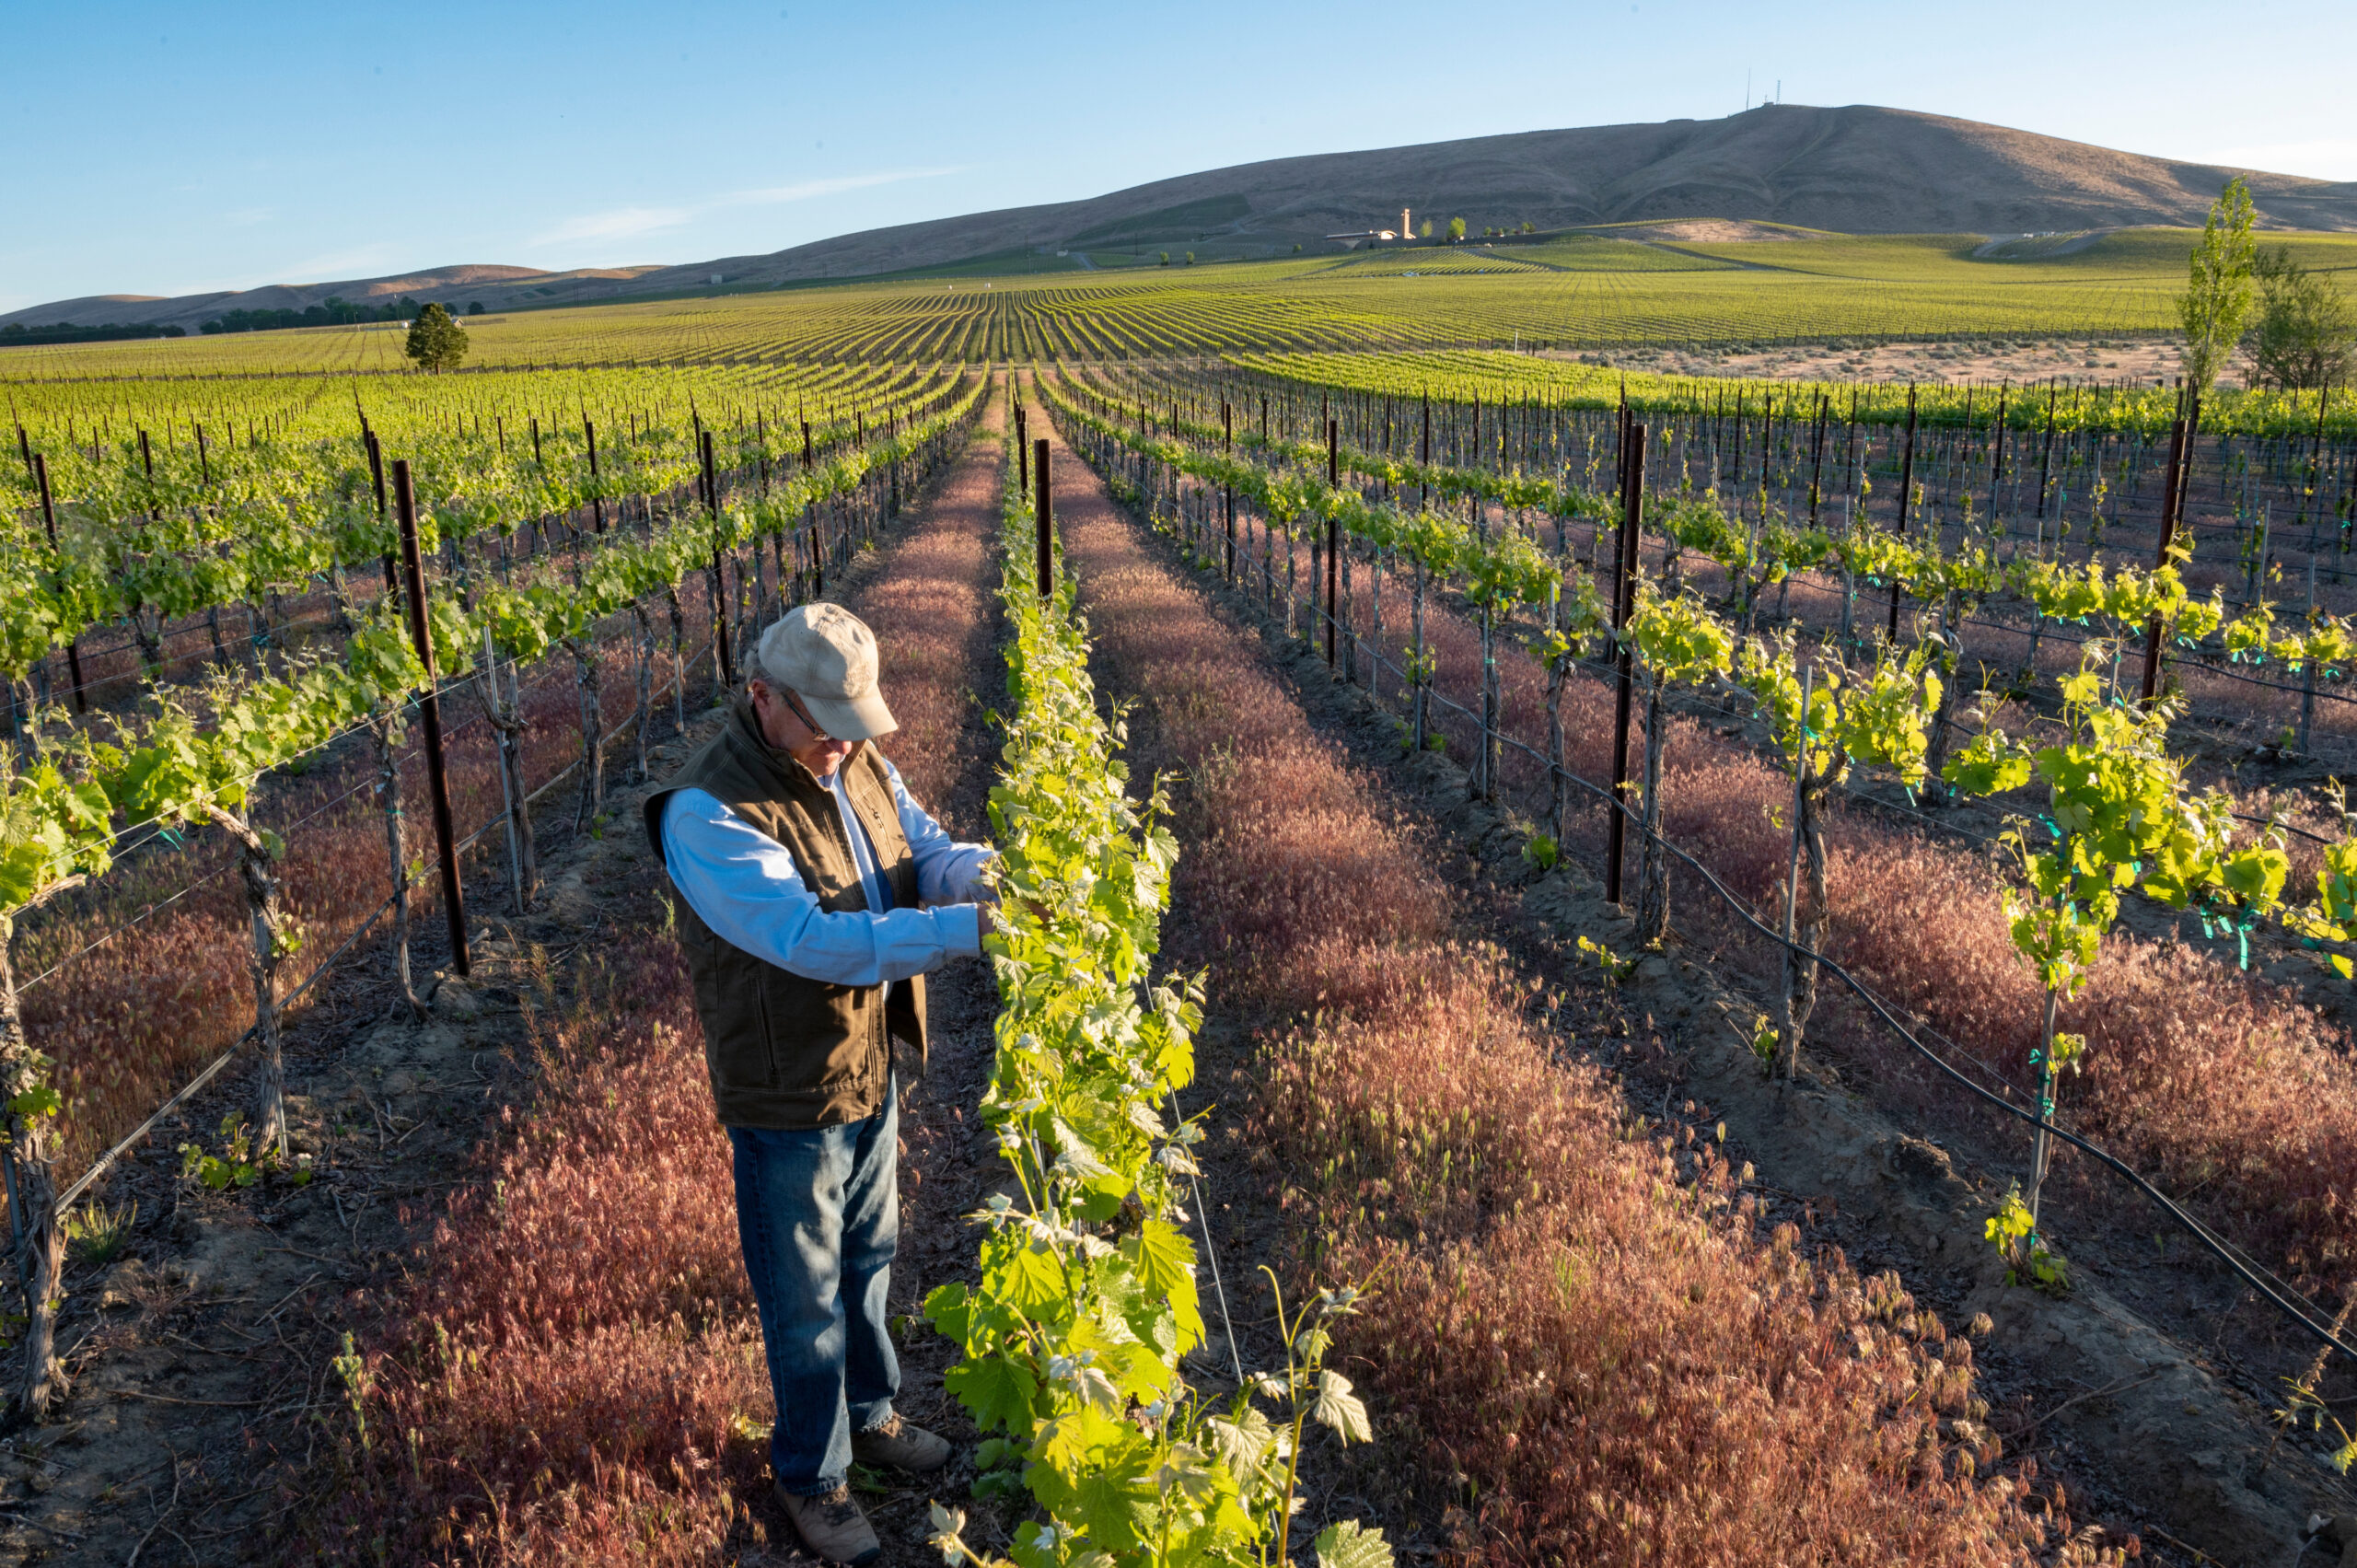 A man in a tab ballcap and brown vest inspects a row of grape vines. The rows stretch toward a rolling hill in the distance under a blue sky.